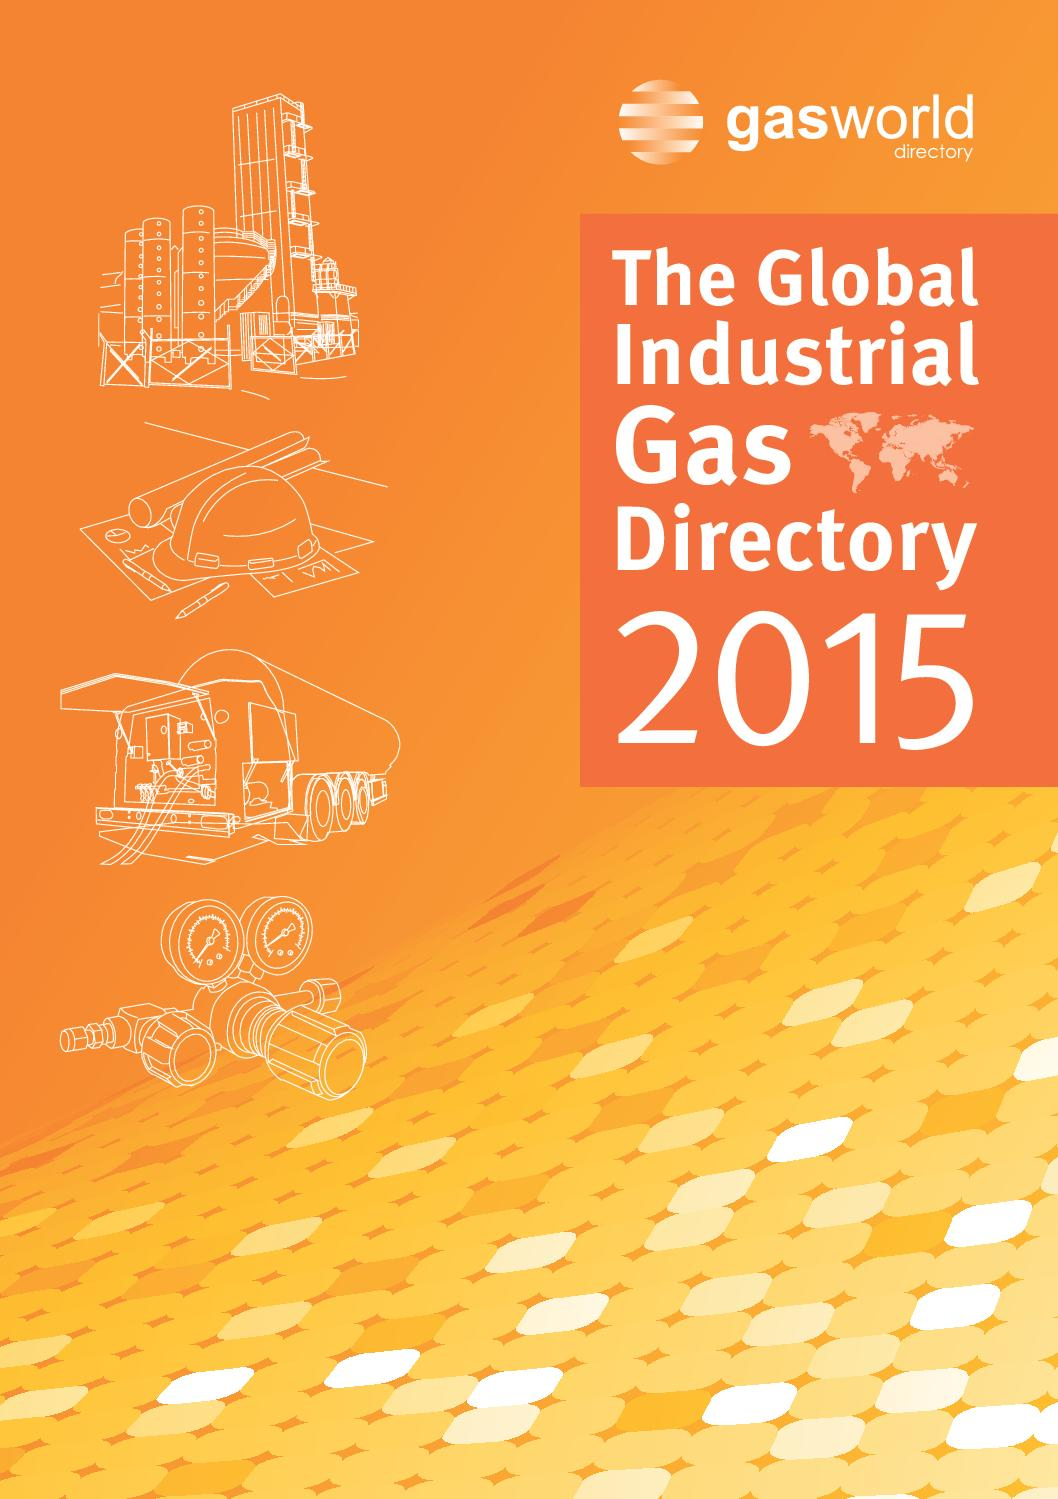 Gasworld Global Industrial Gas Directory 2015Gasworld Pertaining To Zip Code 71112 Sunrise Sunset